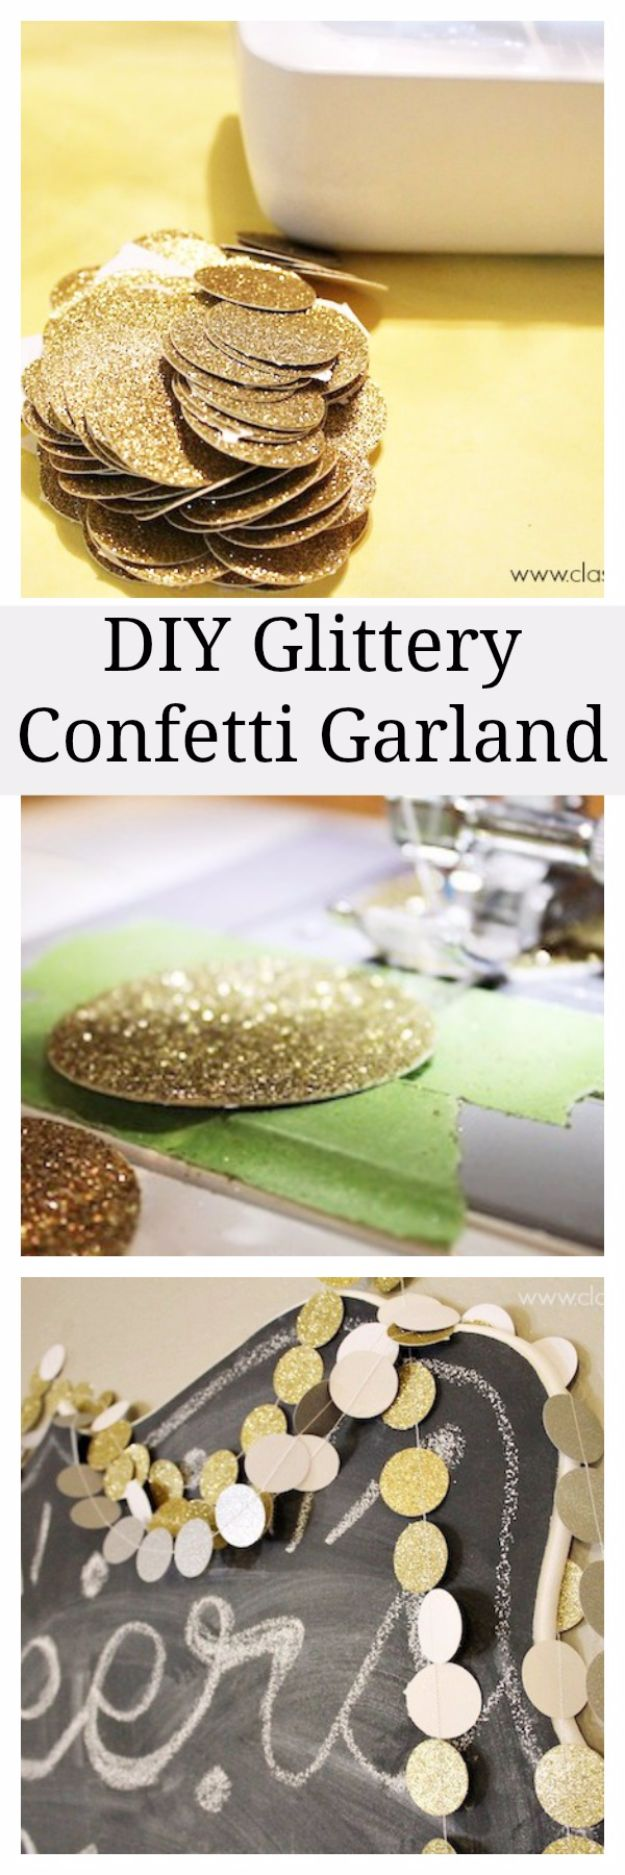 New Years Eve Decor Ideas - DIY Glittery Confetti Garland - DIY New Year's Eve Decorations - Cheap Ideas for Banners, Balloons, Party Tables, Centerpieces and Festive Streamers and Lights - Cool Placecards, Photo Backdrops, Party Hats, Party Horns and Champagne Glasses - Cute Invitations, Games and Free Printables #diy #newyearseve #parties